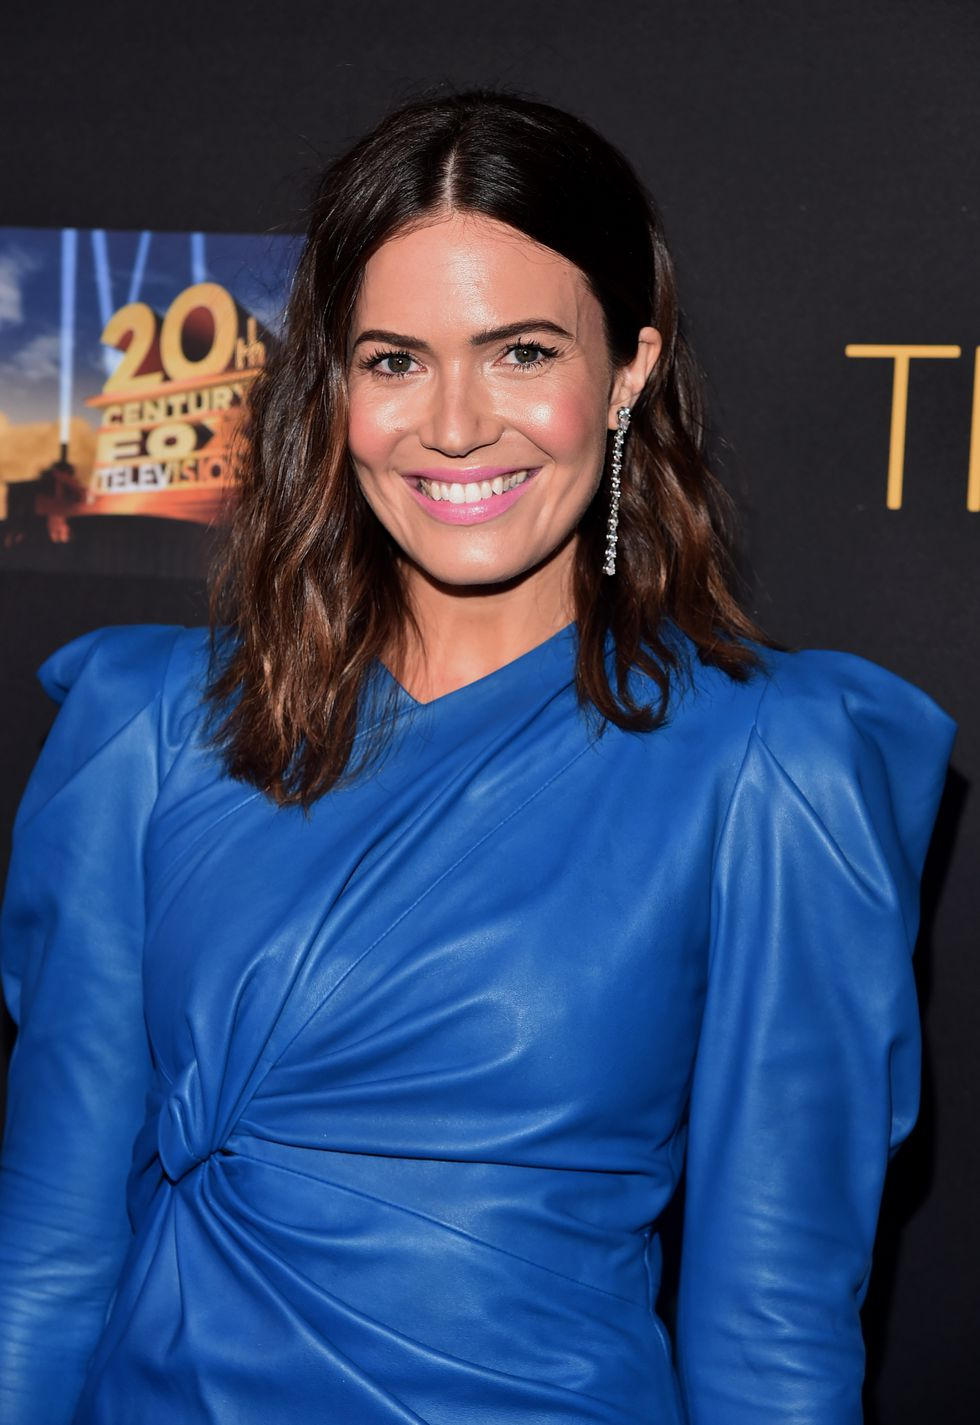 BRUNETTE: Chestnut Ombré Hair   Another two-tone look, Mandy Moore's strands at a  This Is Us  event in August fade from a rich chocolate brown to a warm chestnut. Not quite red, not quite brown, this in-between color is certainly something to bookmark.